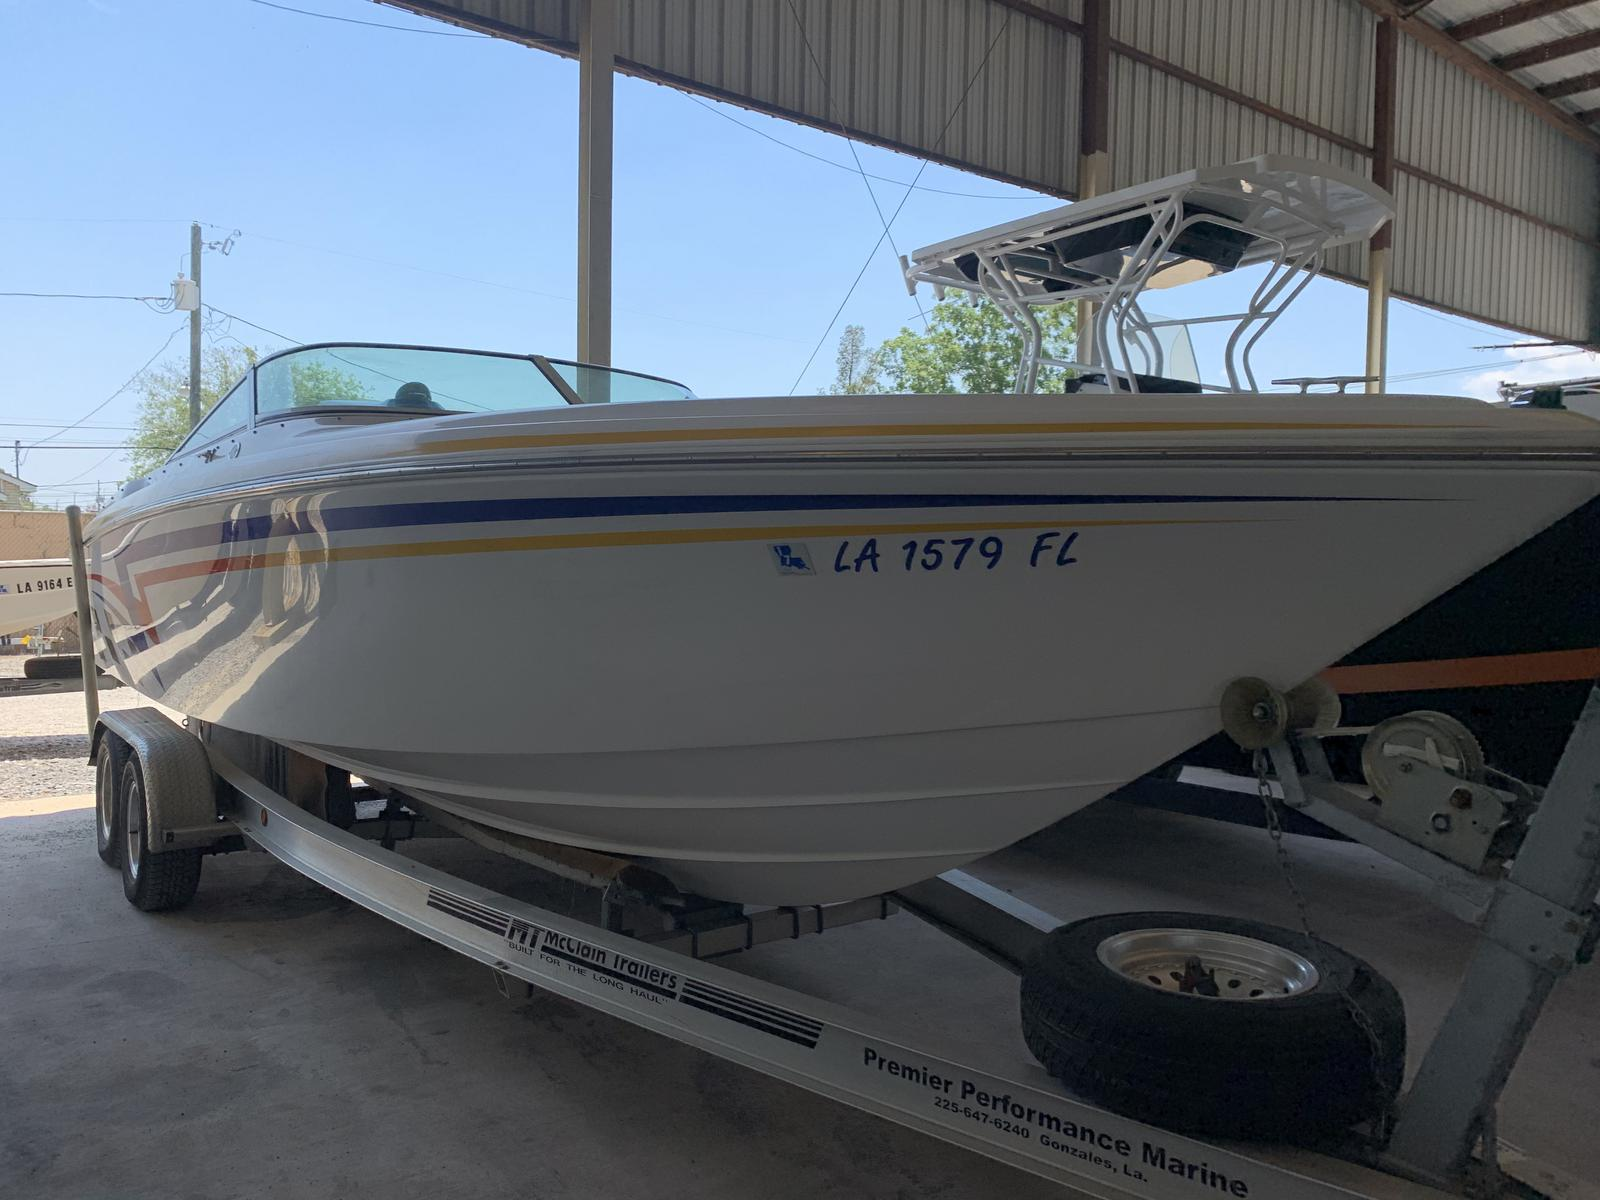 2005 Powerquest boat for sale, model of the boat is Legend 260 SX & Image # 1 of 9